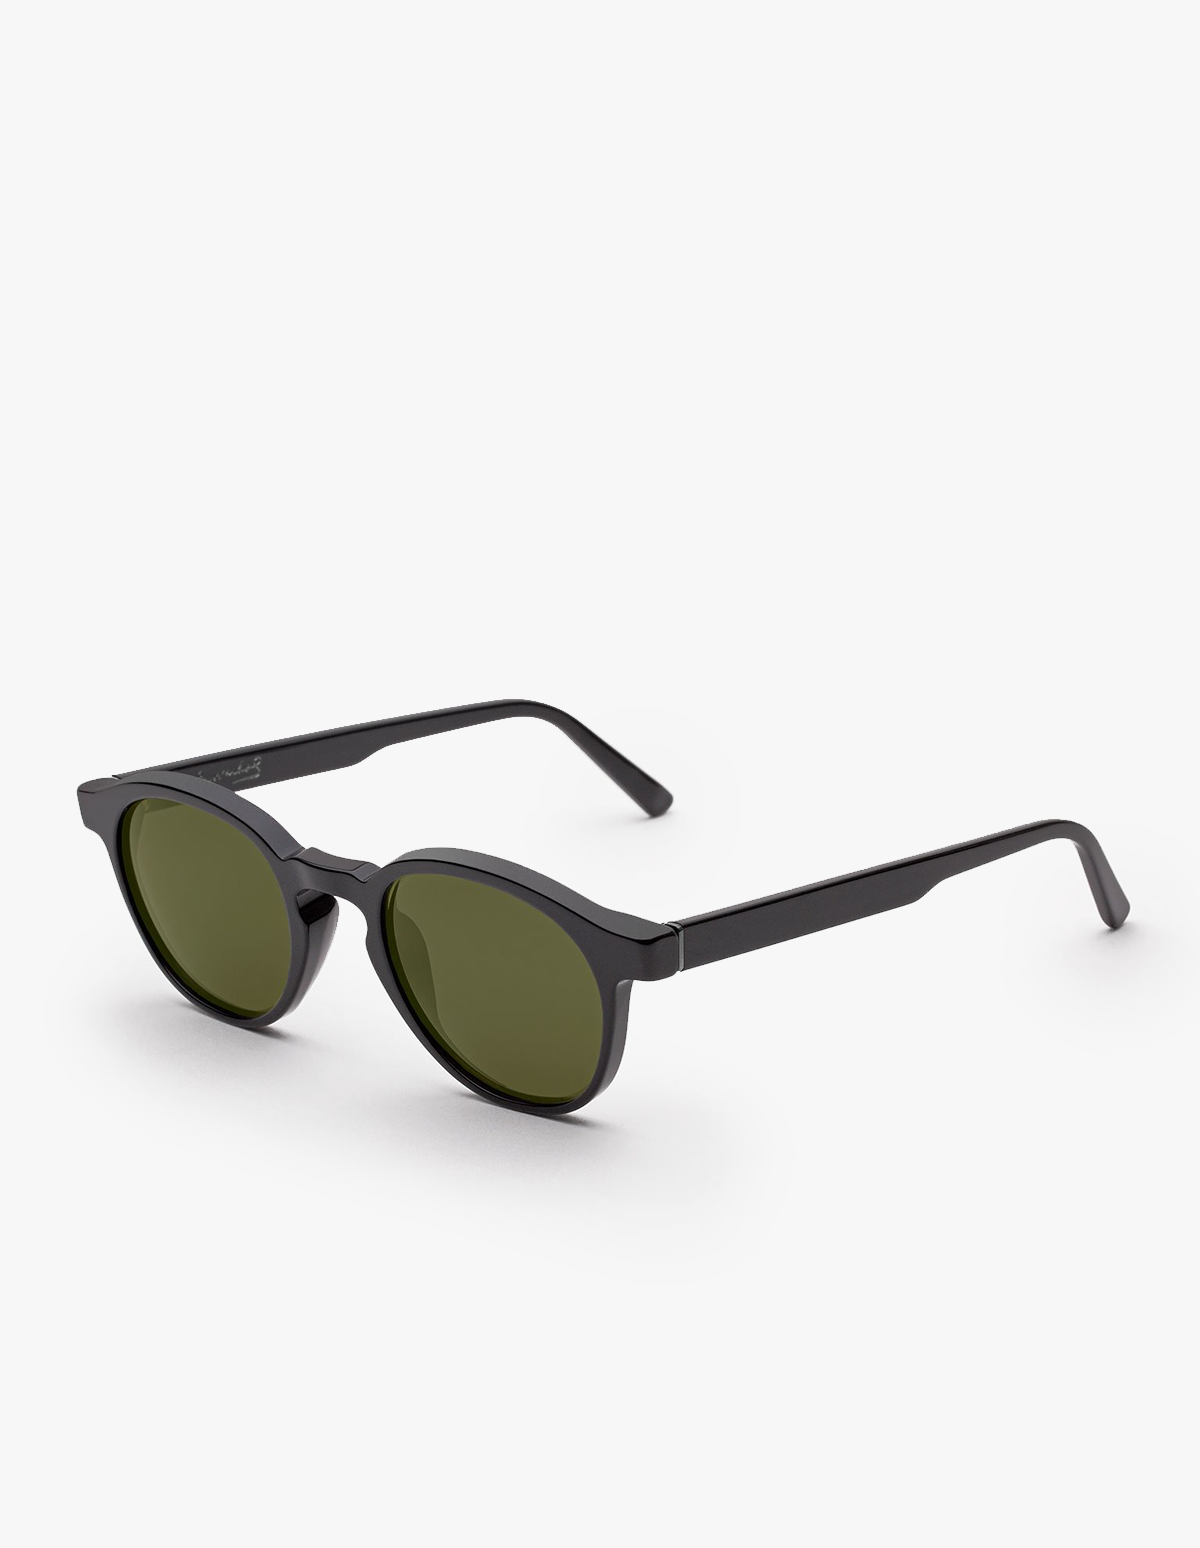 Retrosuperfuture Andy Warhol The Iconic Series Sunglasses in Black Matte